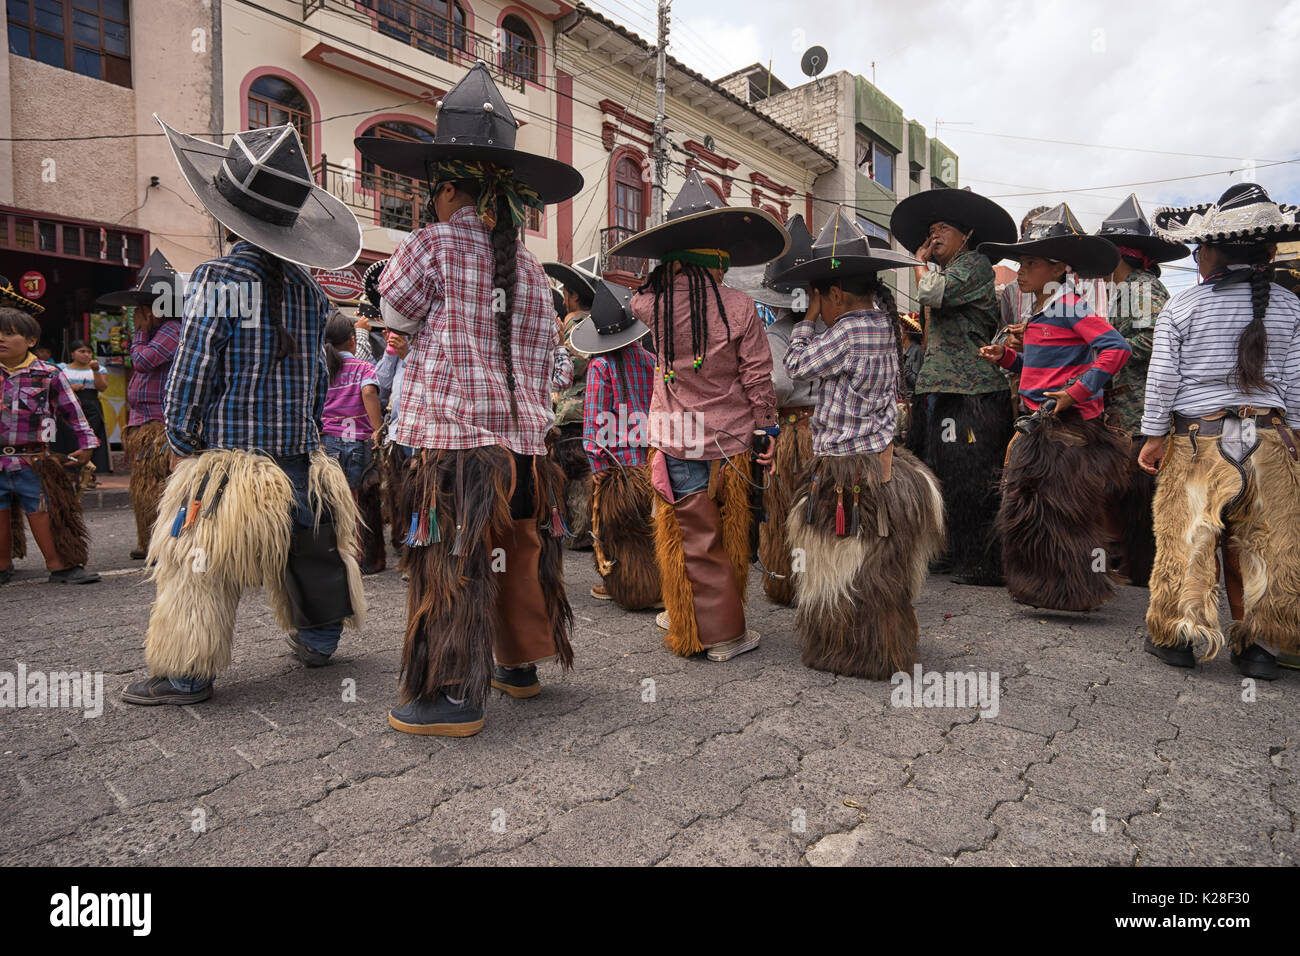 June 25, 2017 Cotacachi, Ecuador: children wearing sombreros and chaps athe the Inti Raymi celebrations - Stock Image